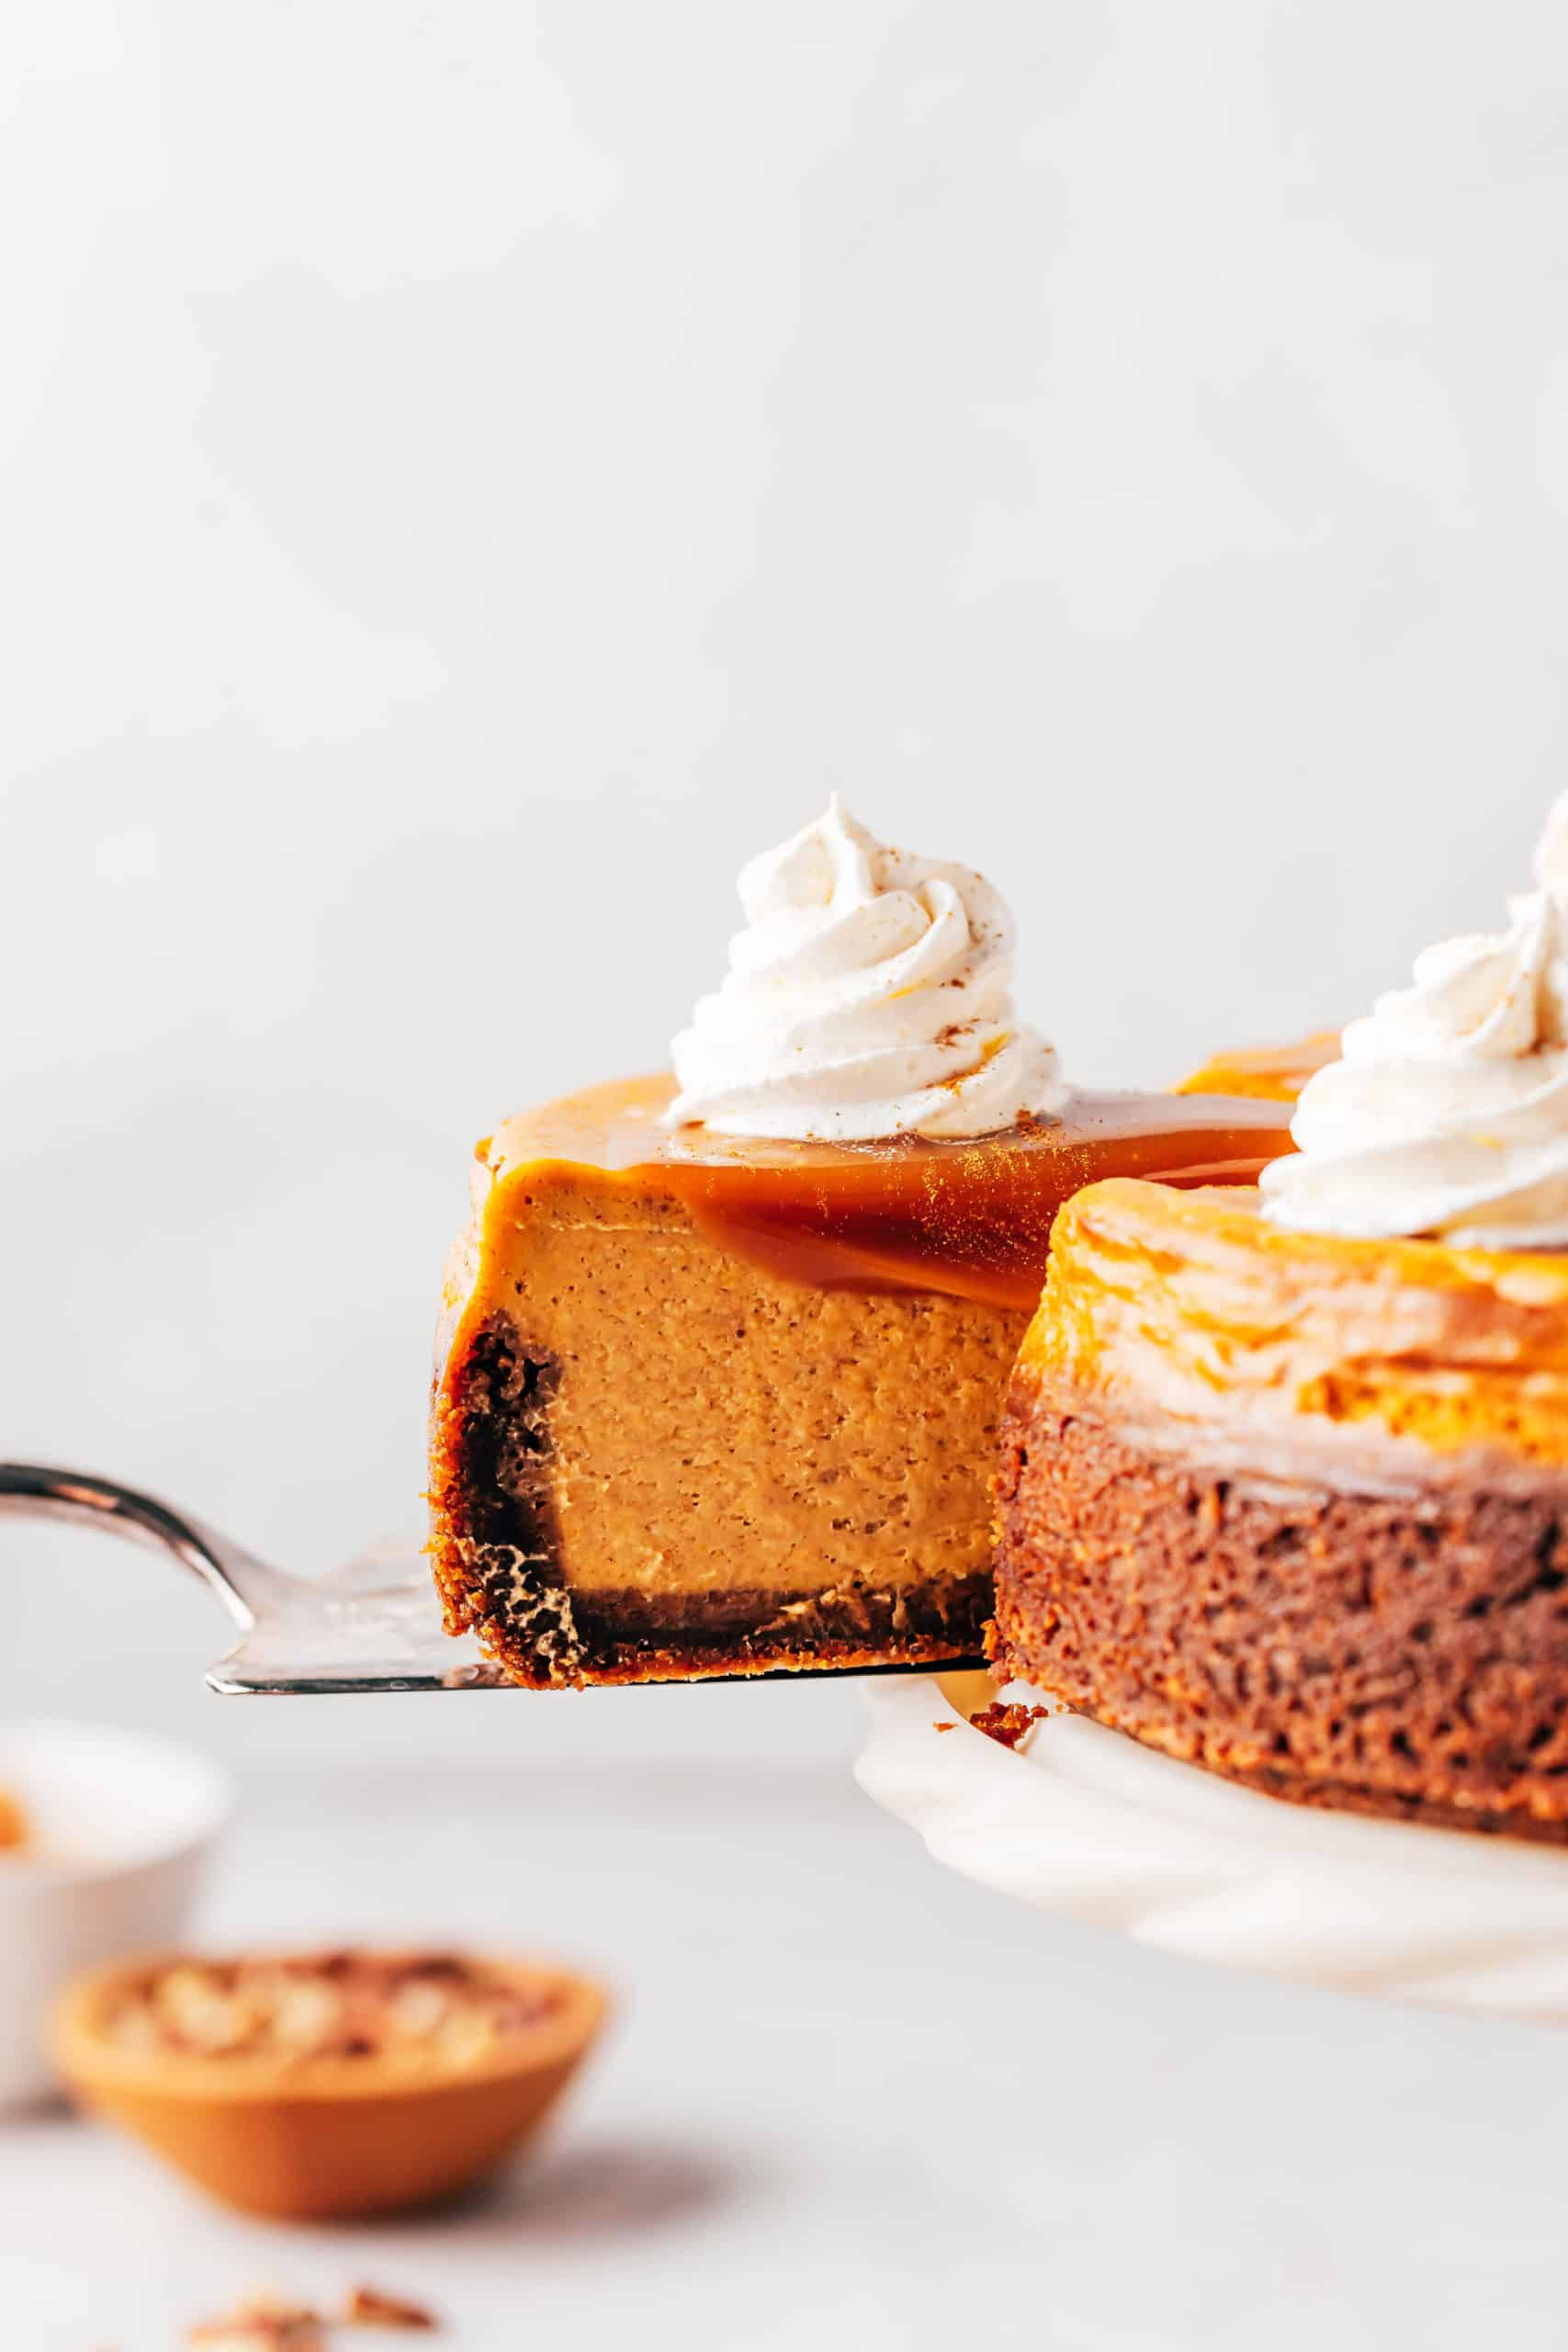 slice of pumpkin cheesecake with caramel